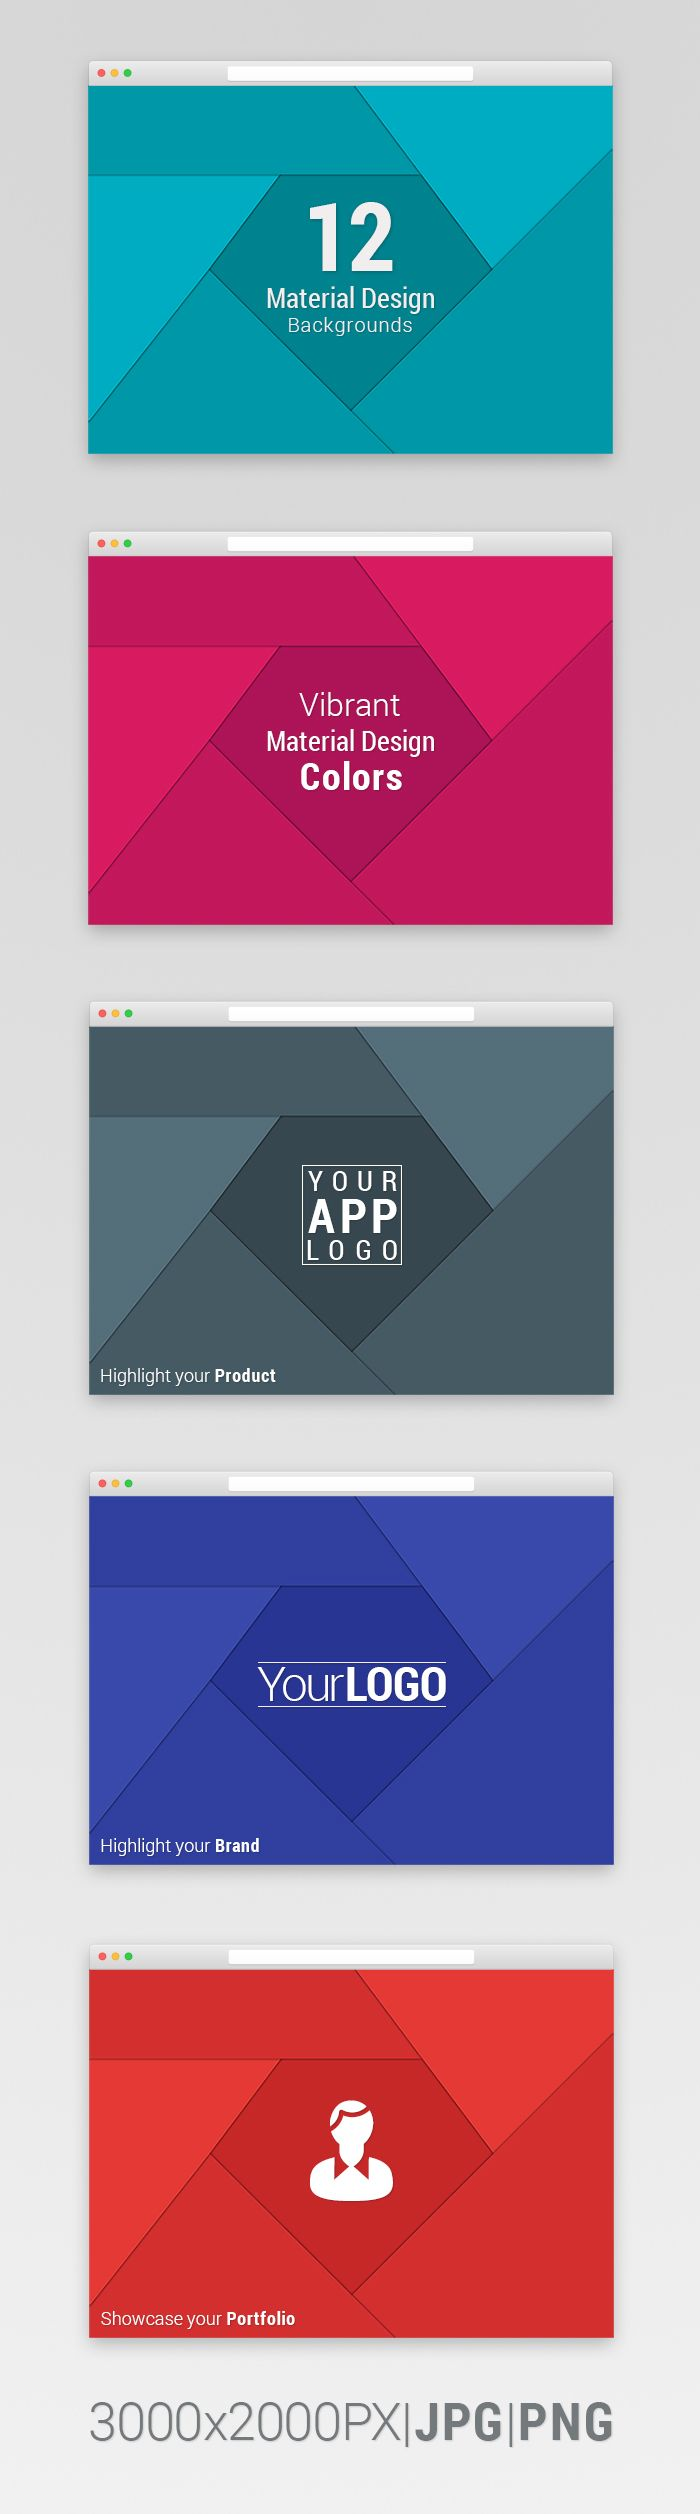 Free Material Design Promotional Backgrounds - Freebie #12